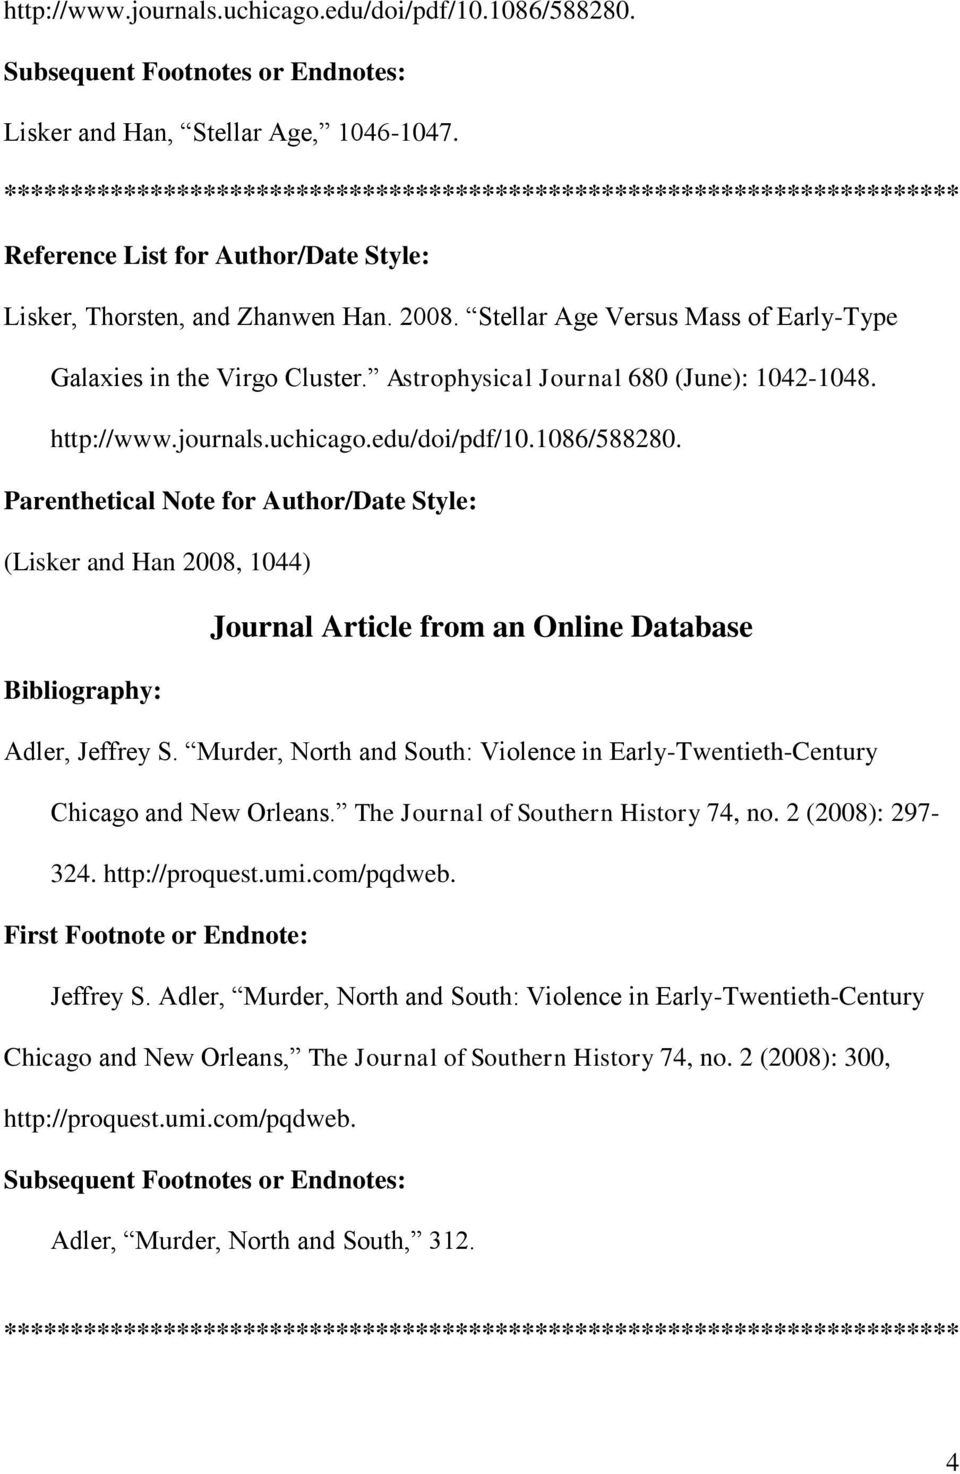 (Lisker and Han 2008, 1044) Journal Article from an Online Database Adler, Jeffrey S. Murder, North and South: Violence in Early-Twentieth-Century Chicago and New Orleans.